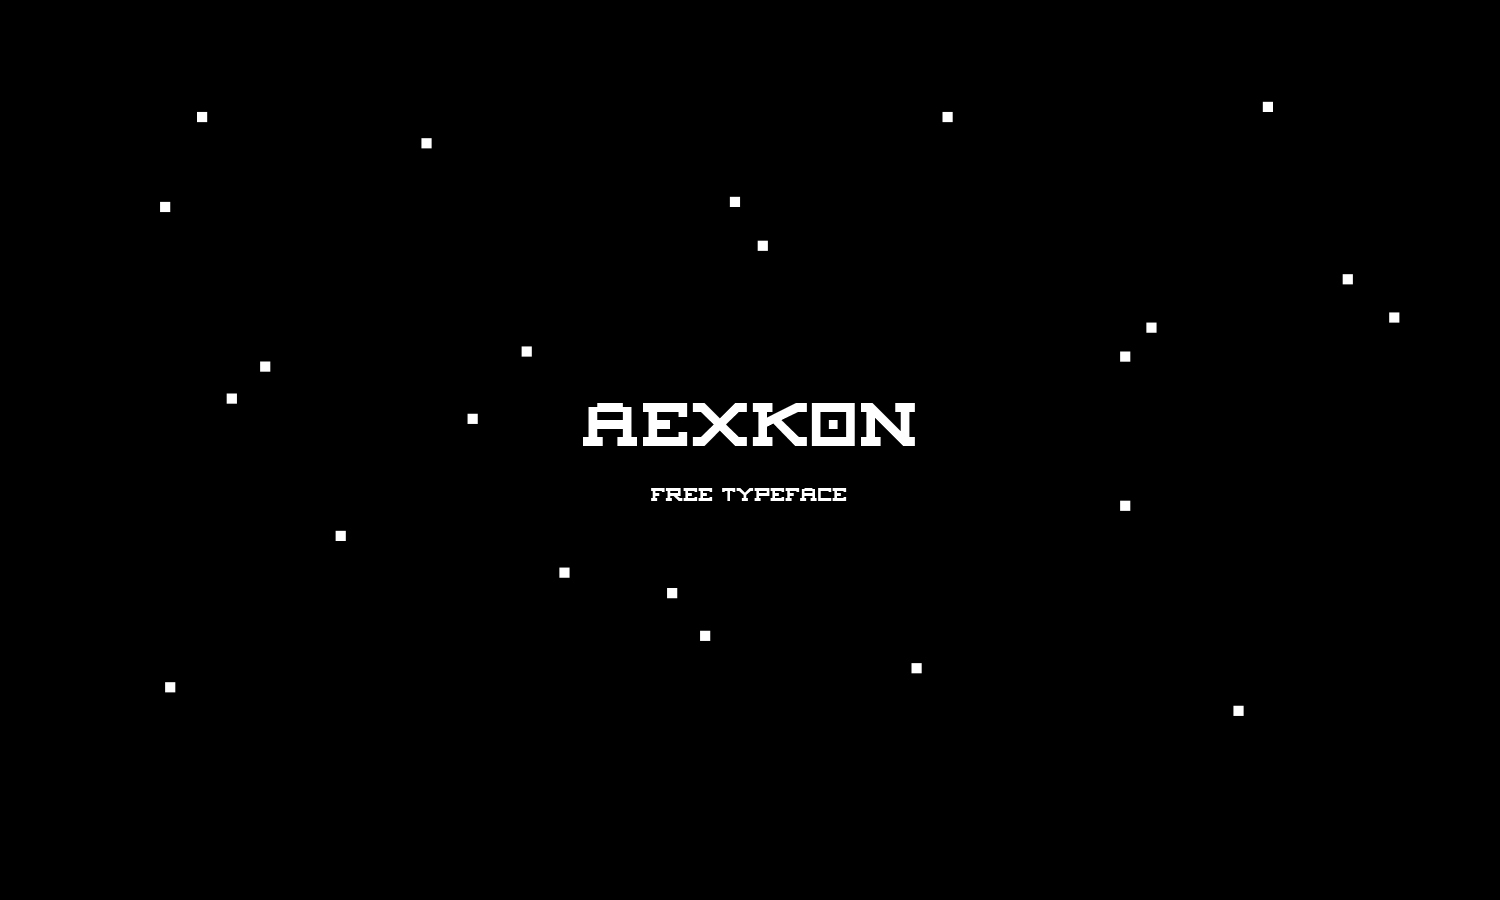 AEXKON Free Font - serif, decorative-display